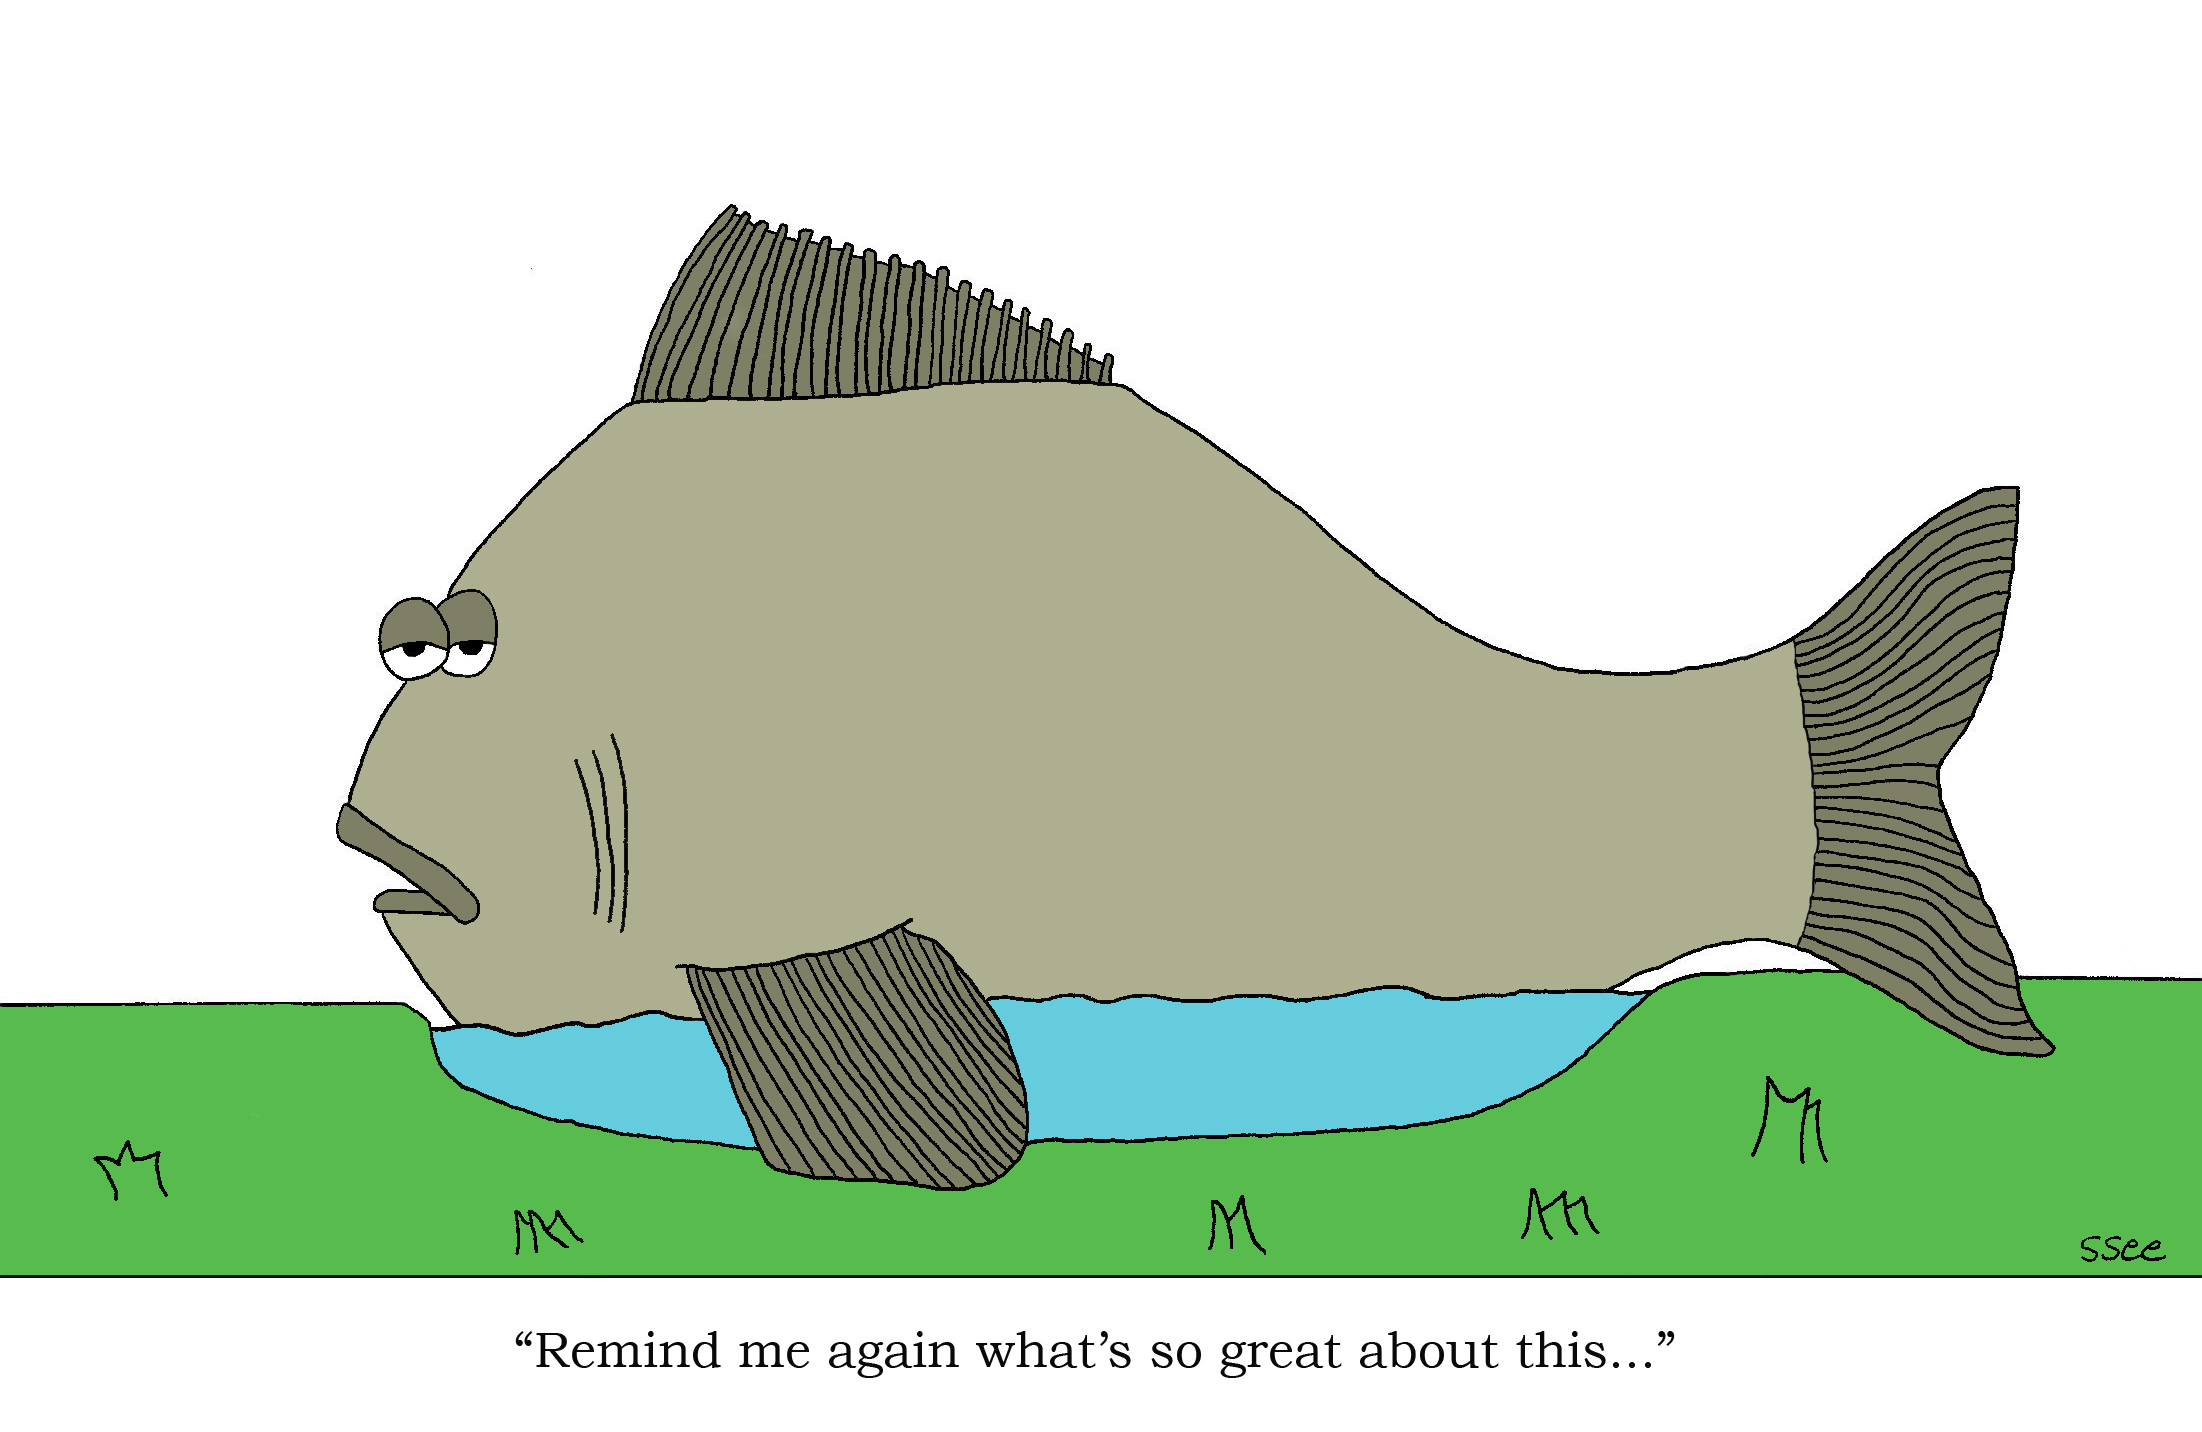 big-fish-in-a-small-pond